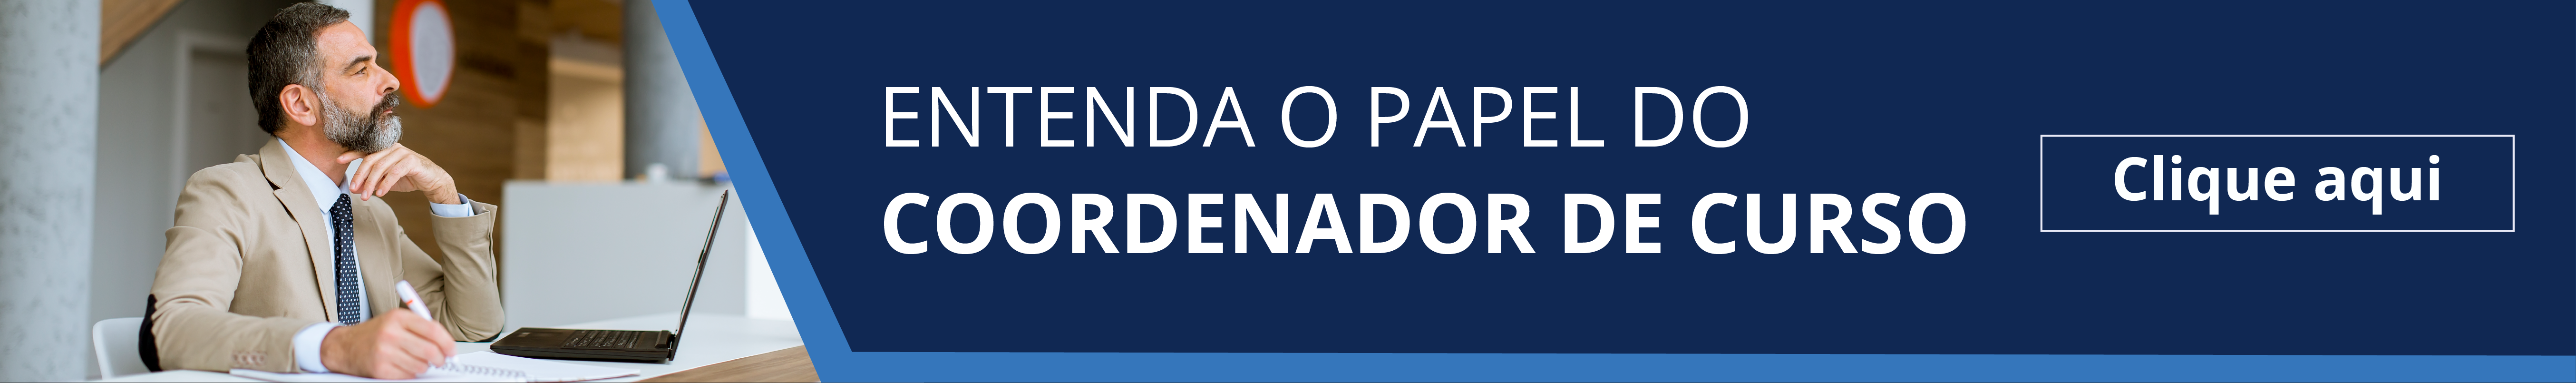 Entenda o papel do coordenador de curso